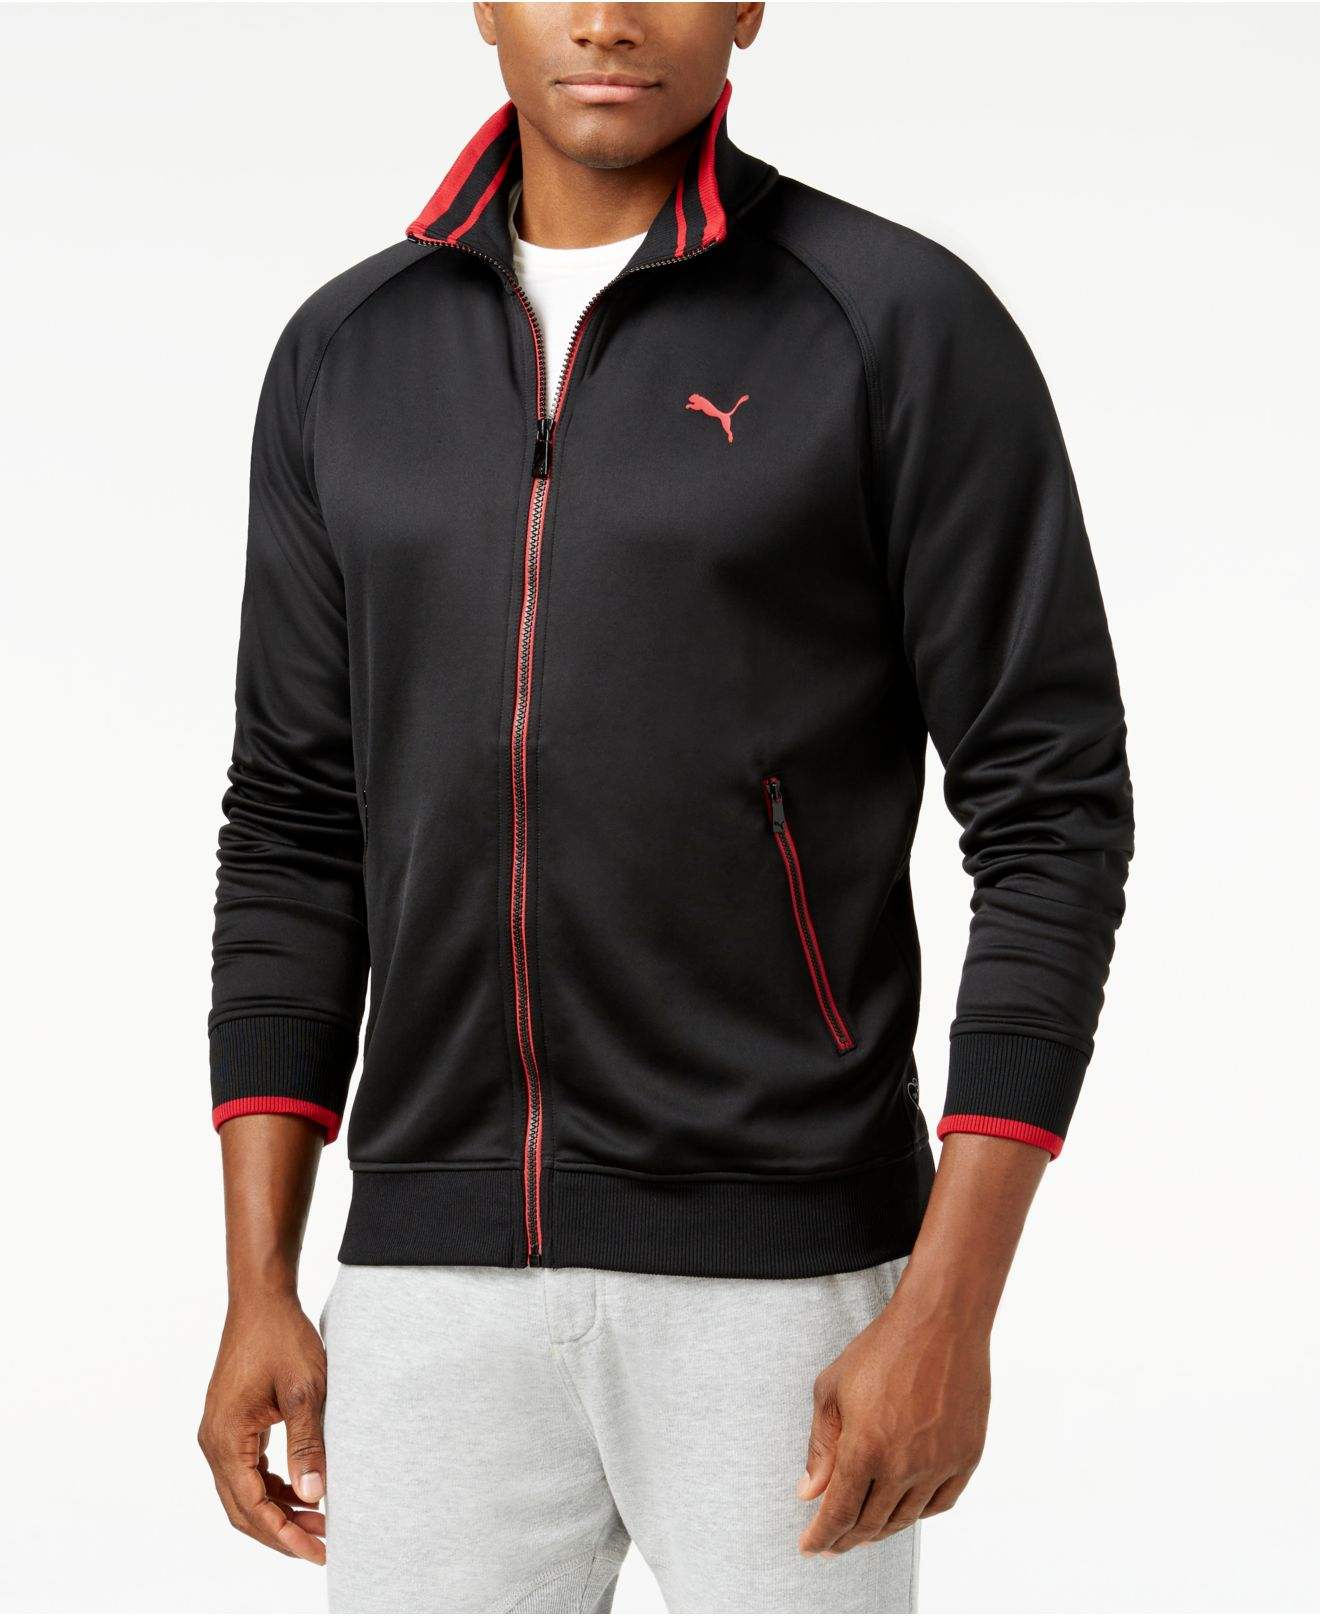 cabff1229f63 Lyst - PUMA Men s Full-zip Tricot Track Jacket in Black for Men